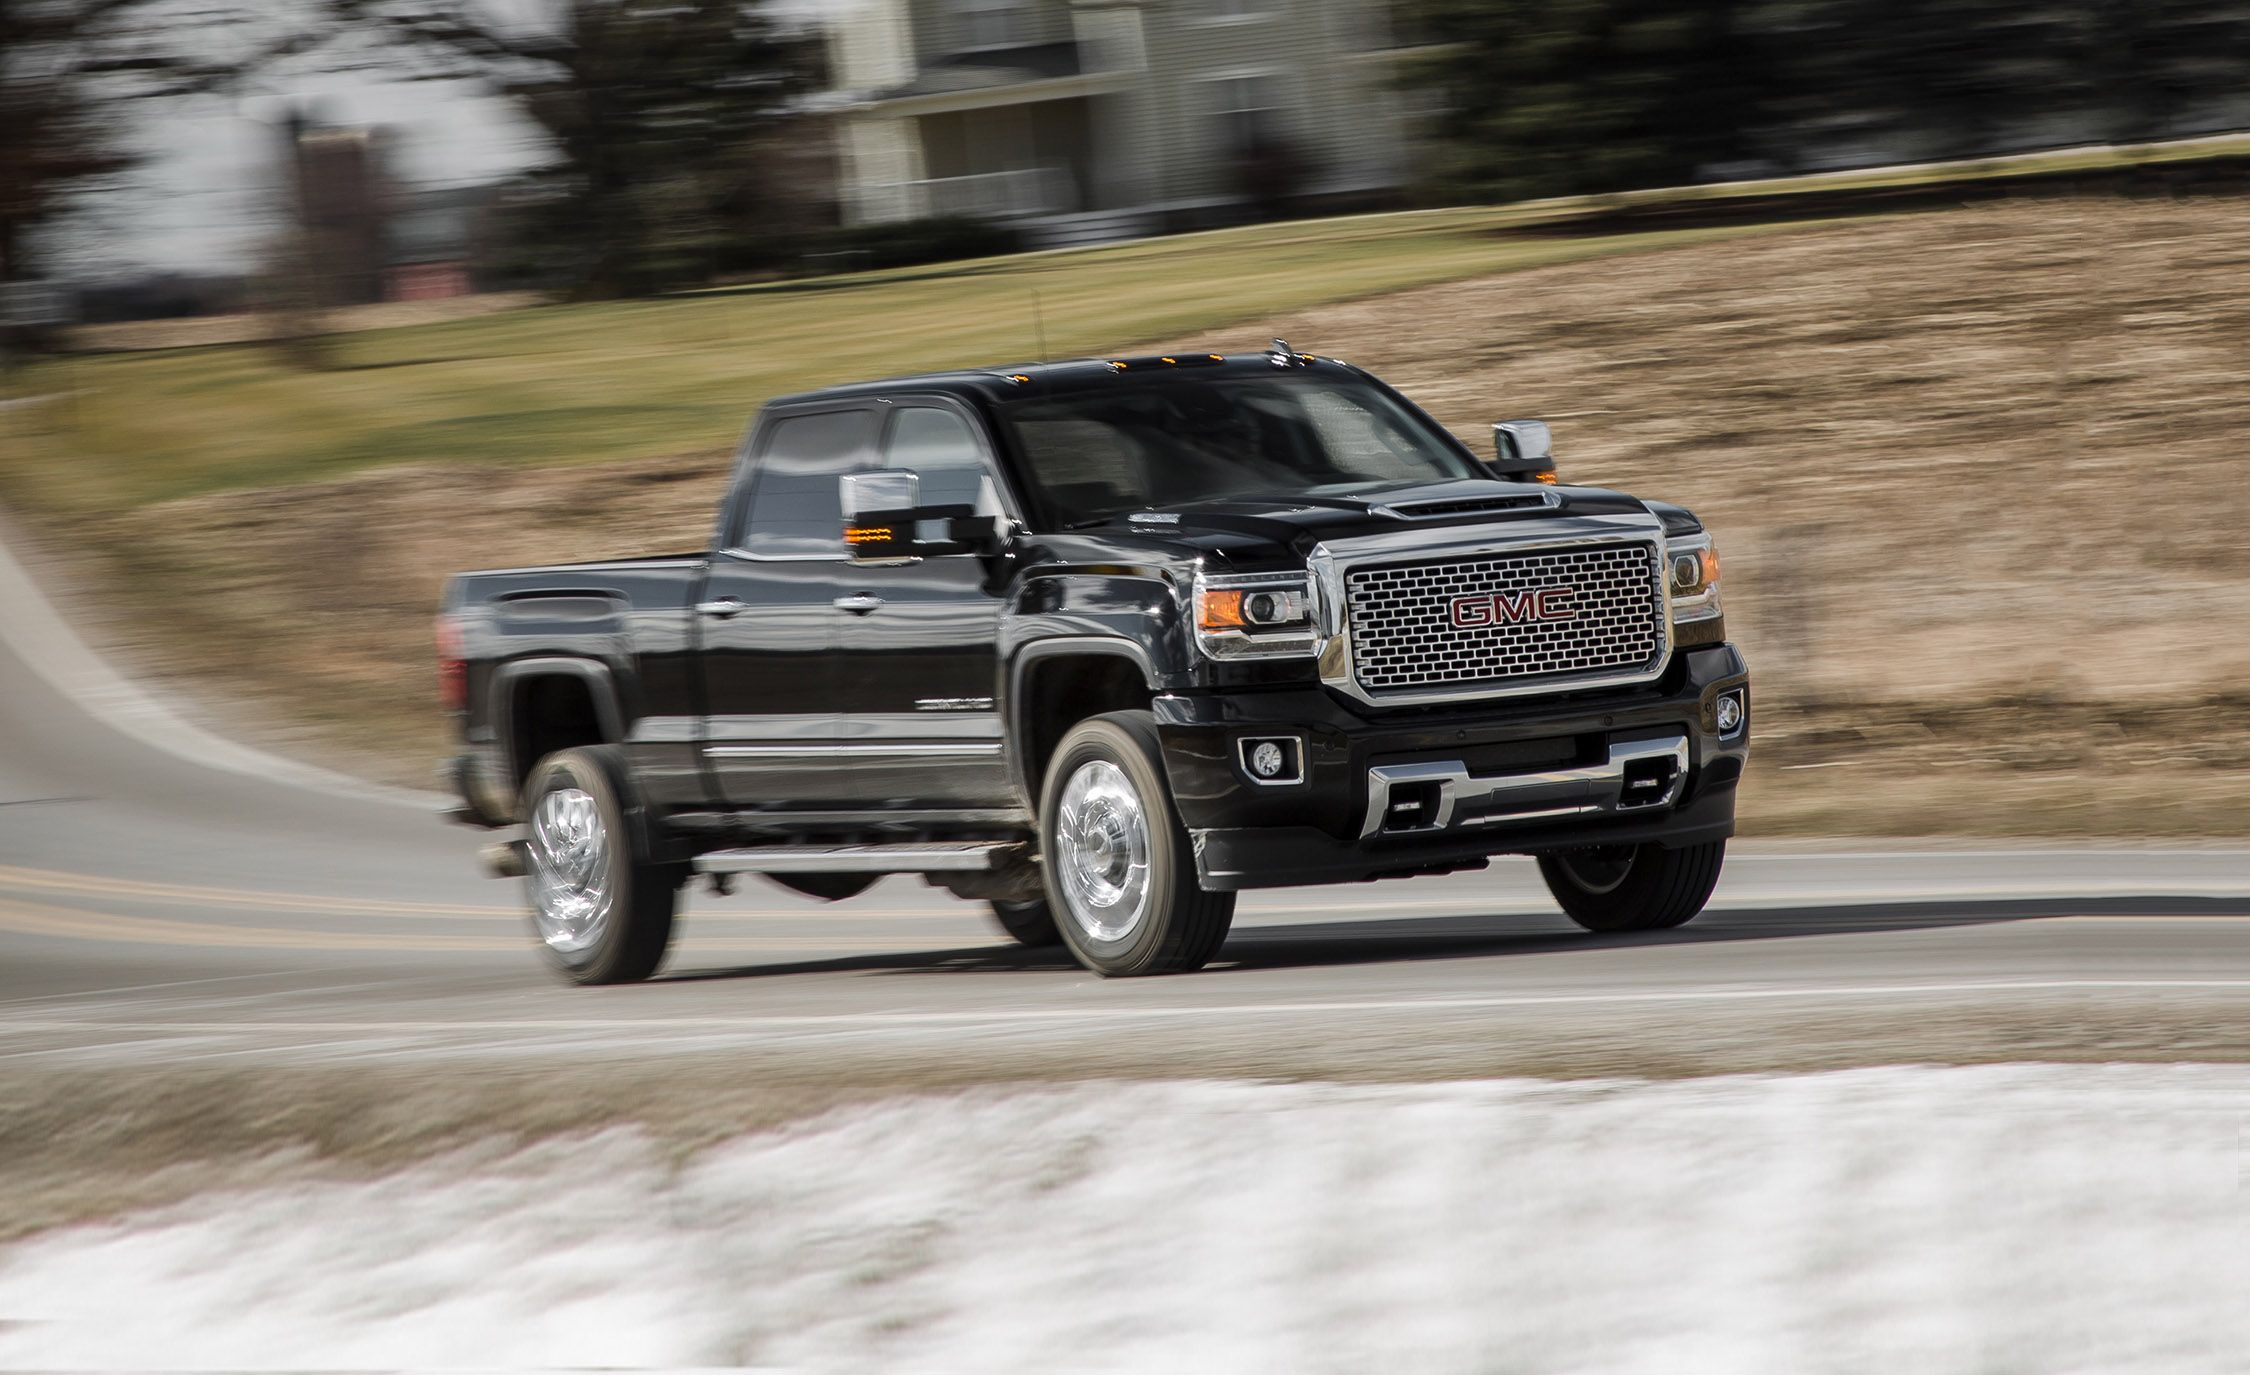 2017 Gmc Sierra 2500hd Sel 4x4 Crew Cab Test Review Car And Driver